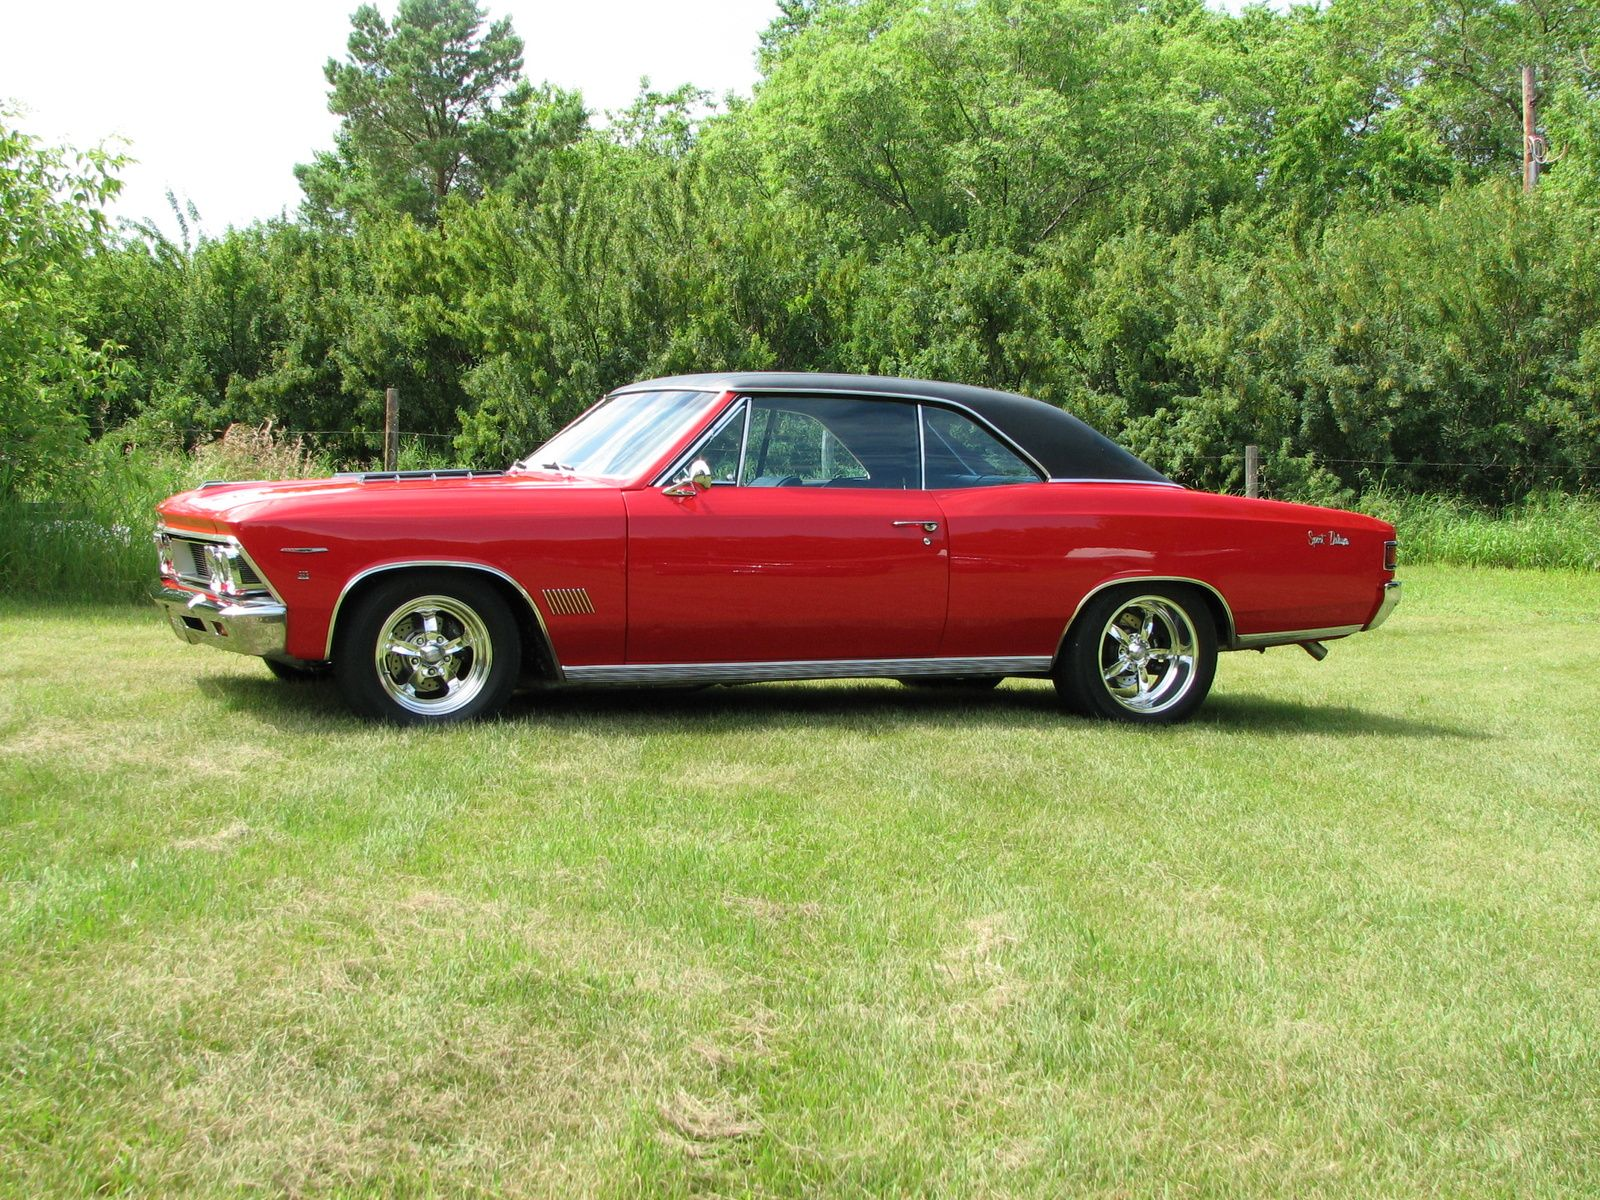 beaumont sd pontiac beaumonts pinterest cars canada and classic. Cars Review. Best American Auto & Cars Review